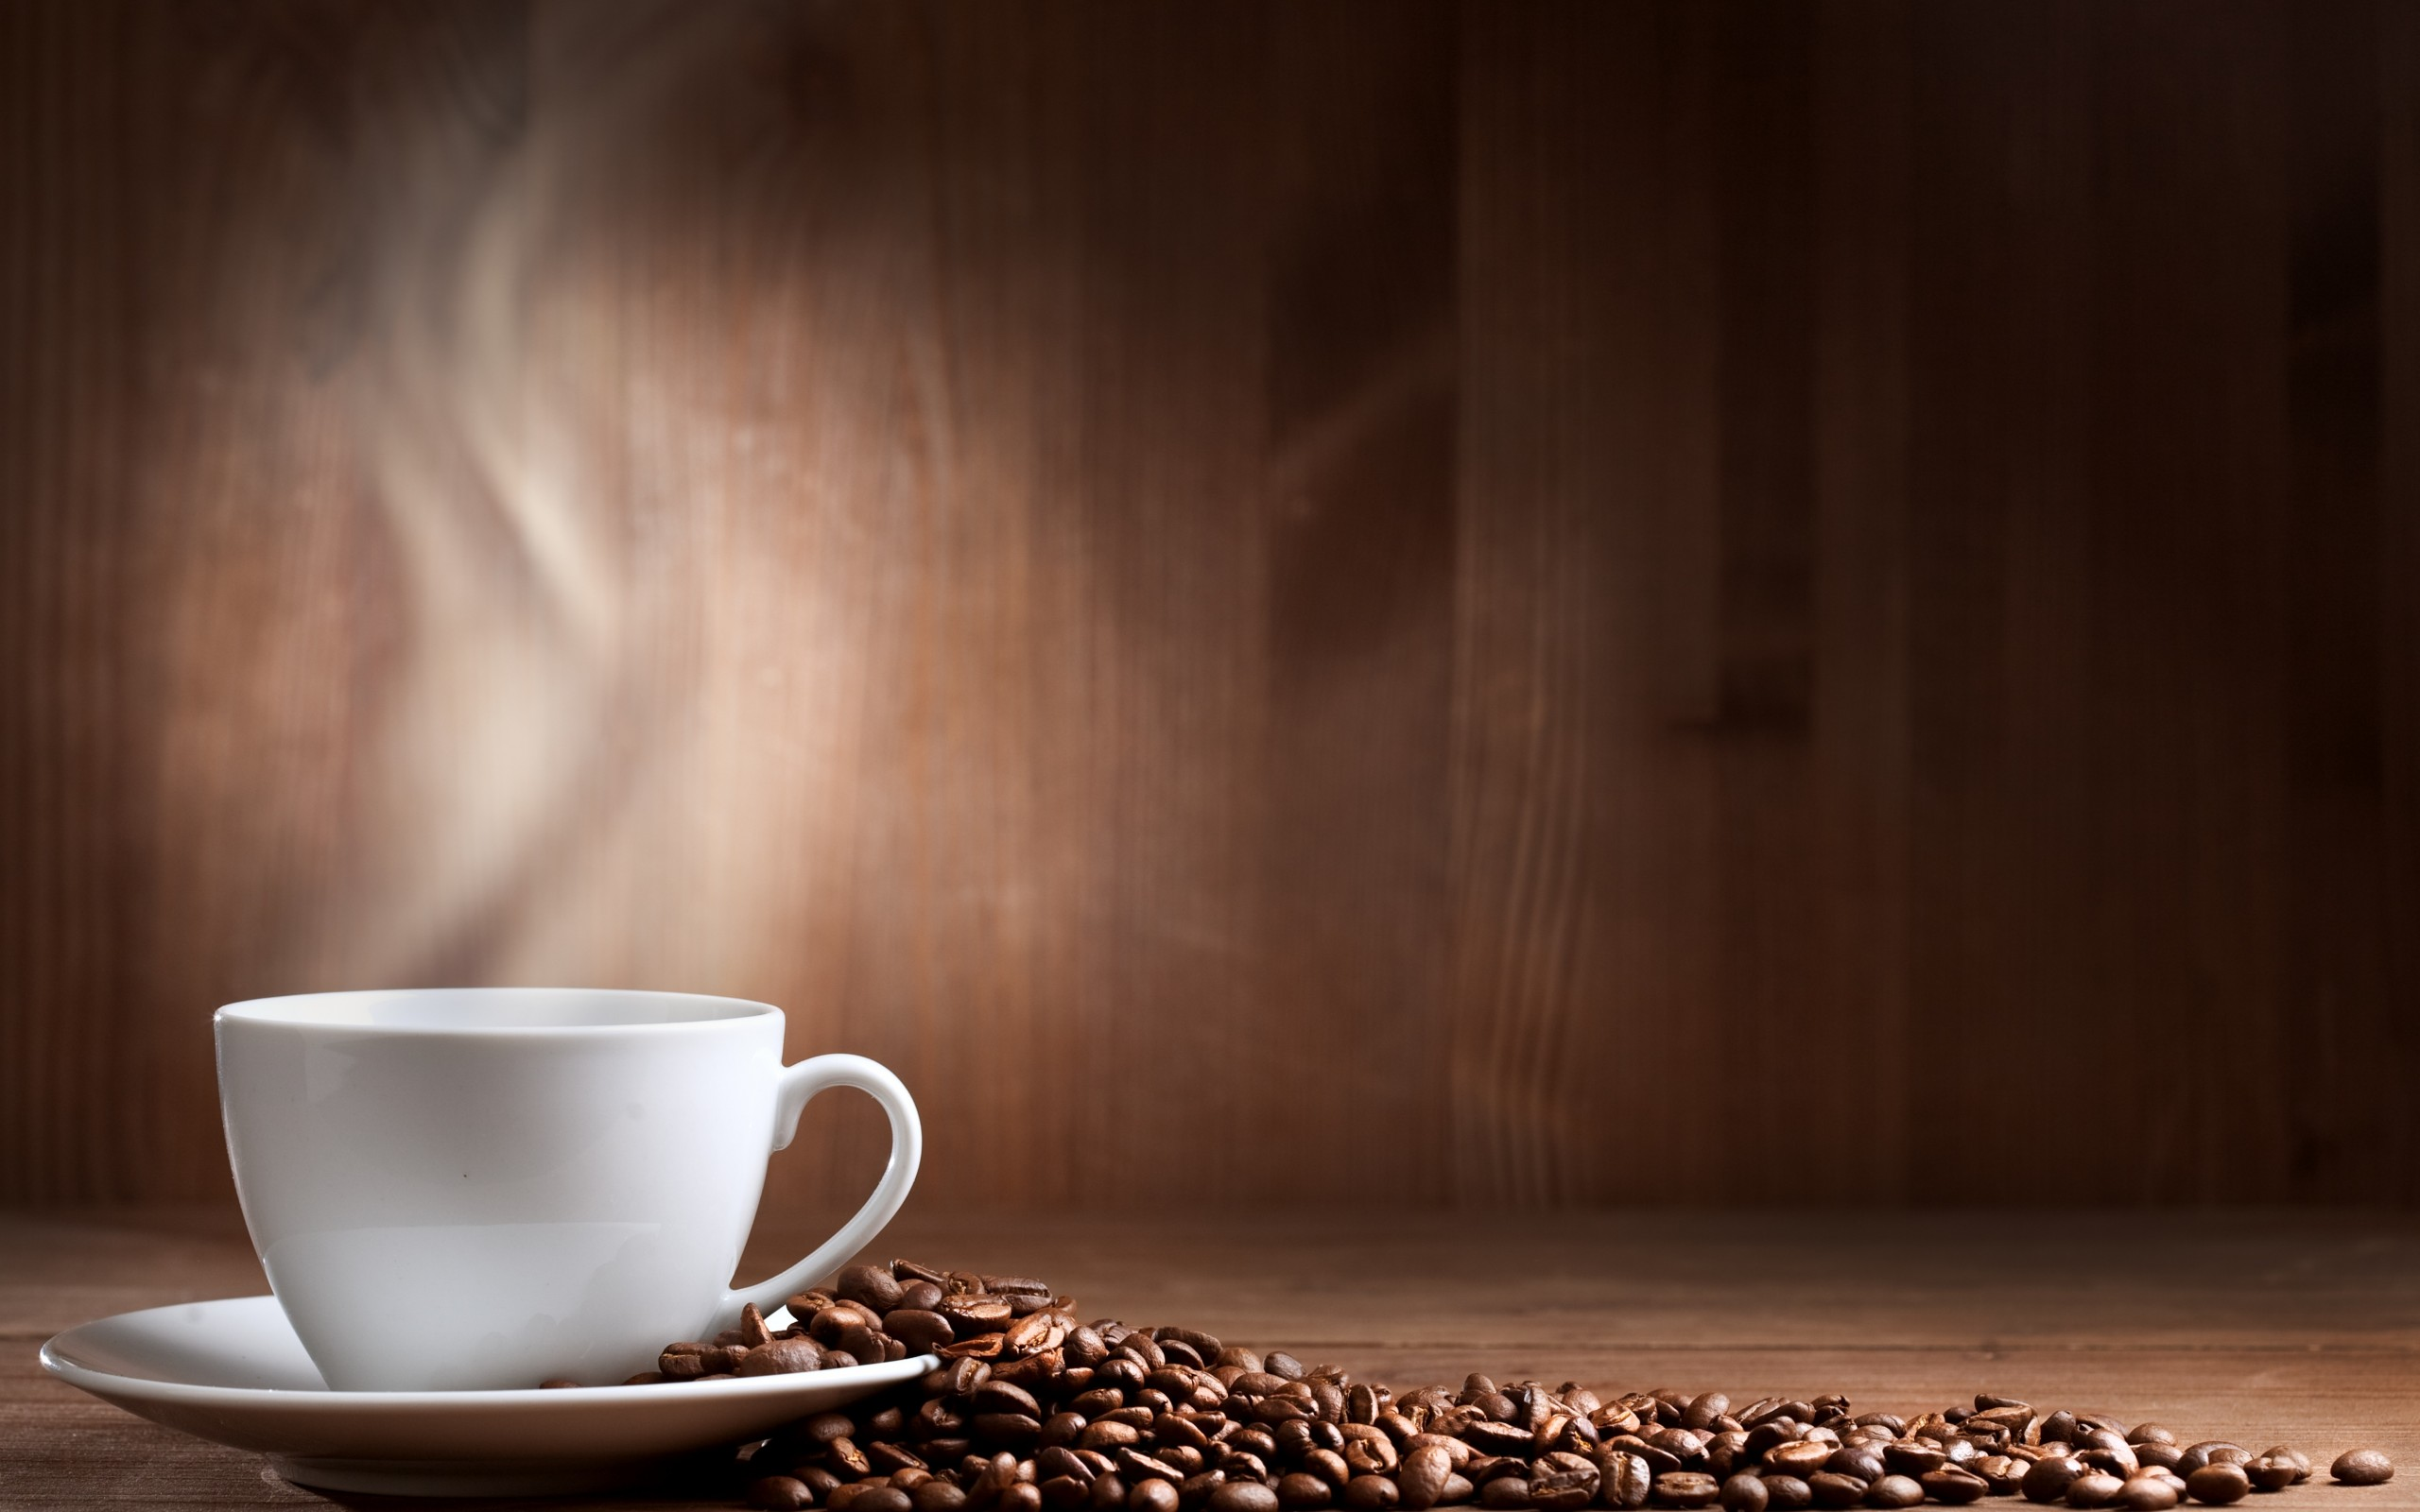 Coffee Hd Wallpaper Background Image 2560x1600 Id 377251 Abyss